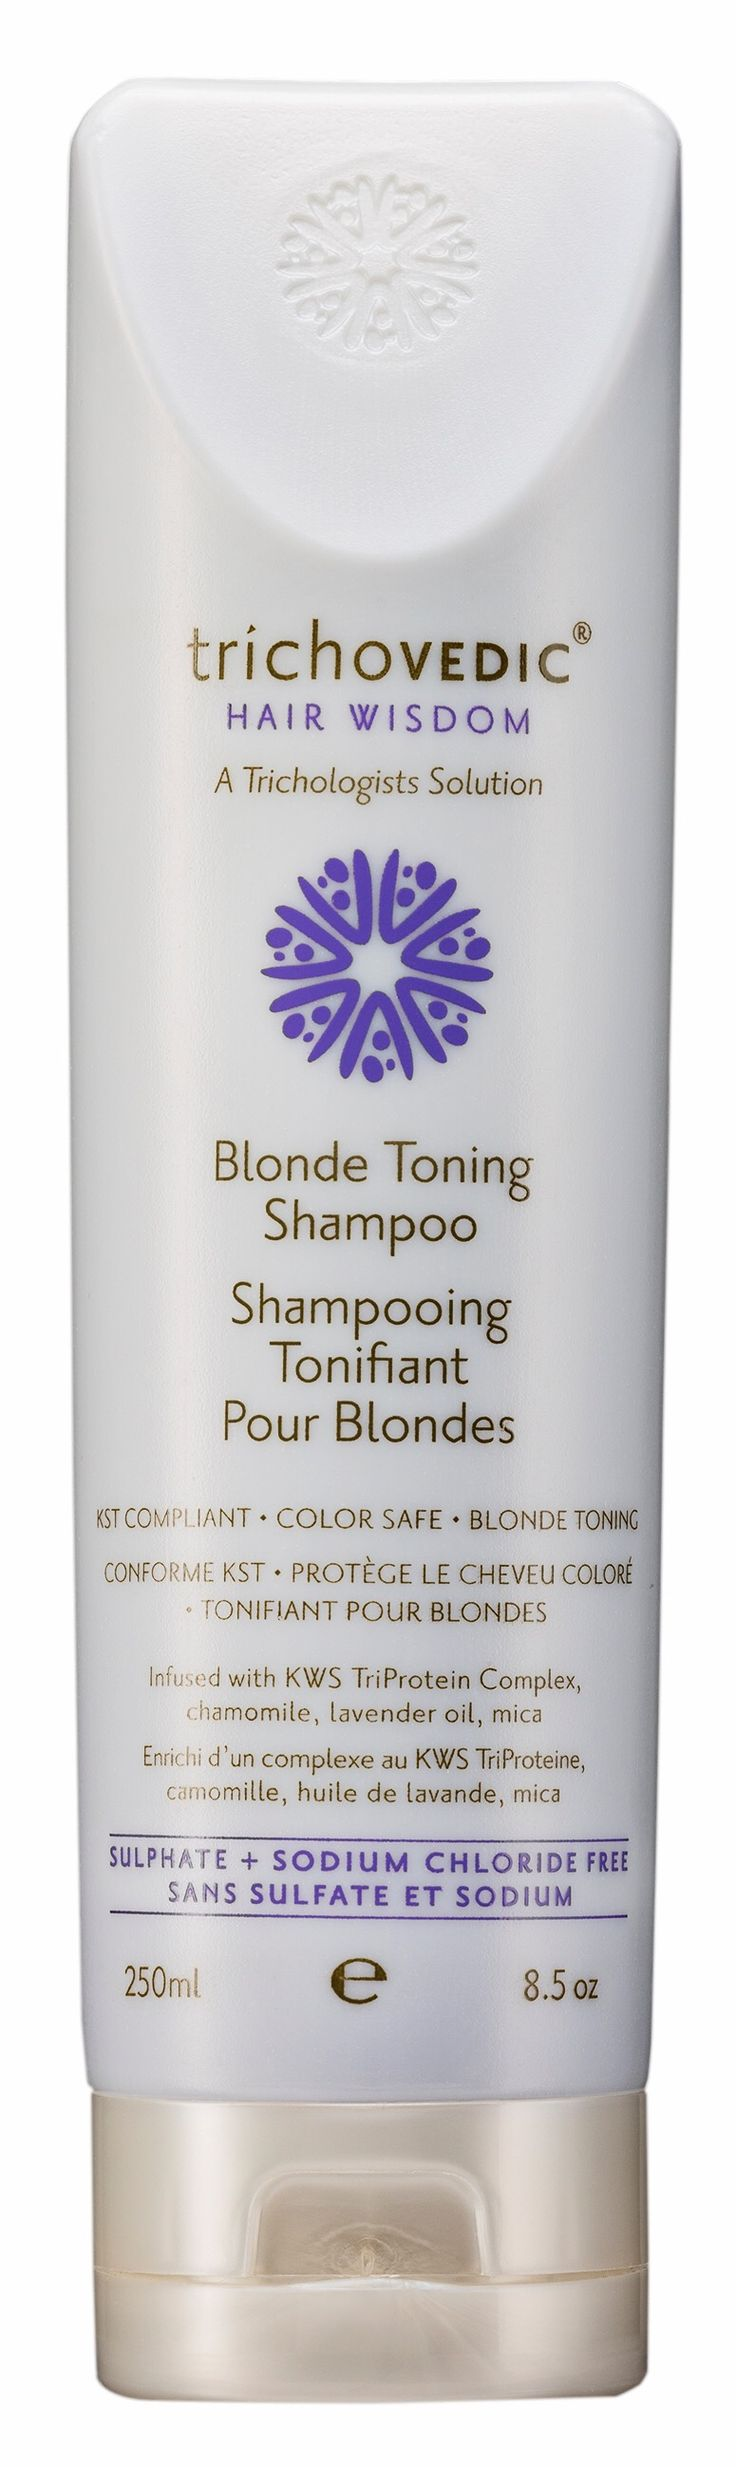 Blonde Toning Shampoo - available in 250ml & 2Lt. A hypoallergenic blonde toning shampoo which is suphate, sodium chloride and paraben free. Formulated for Keratin Smoothing Treatment aftercare and blonde and grey hair. It is particularly suitable for sensitive skin / scalp. Incorporating FadeProtect+ Shine Complex, Chamomile, Lavender Oil and FD&C Violet & Blue to tone yellow, add incredible shine and protect colour. Formulated from natural glucose and coconut oil and infused with KWS…